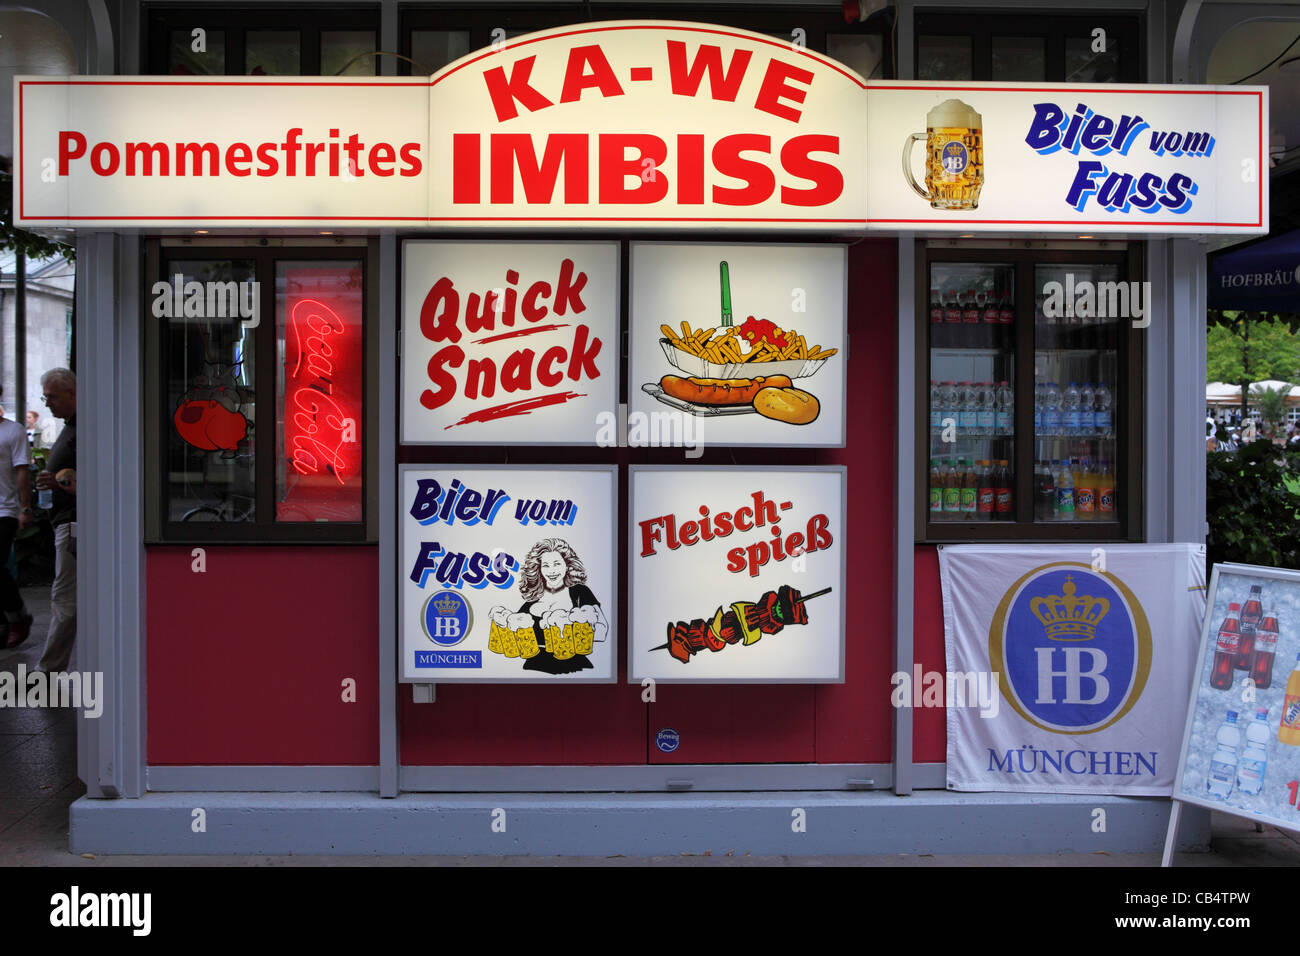 a fastfood stand imbiss in berlin germany stock photo royalty free image 41289217 alamy. Black Bedroom Furniture Sets. Home Design Ideas